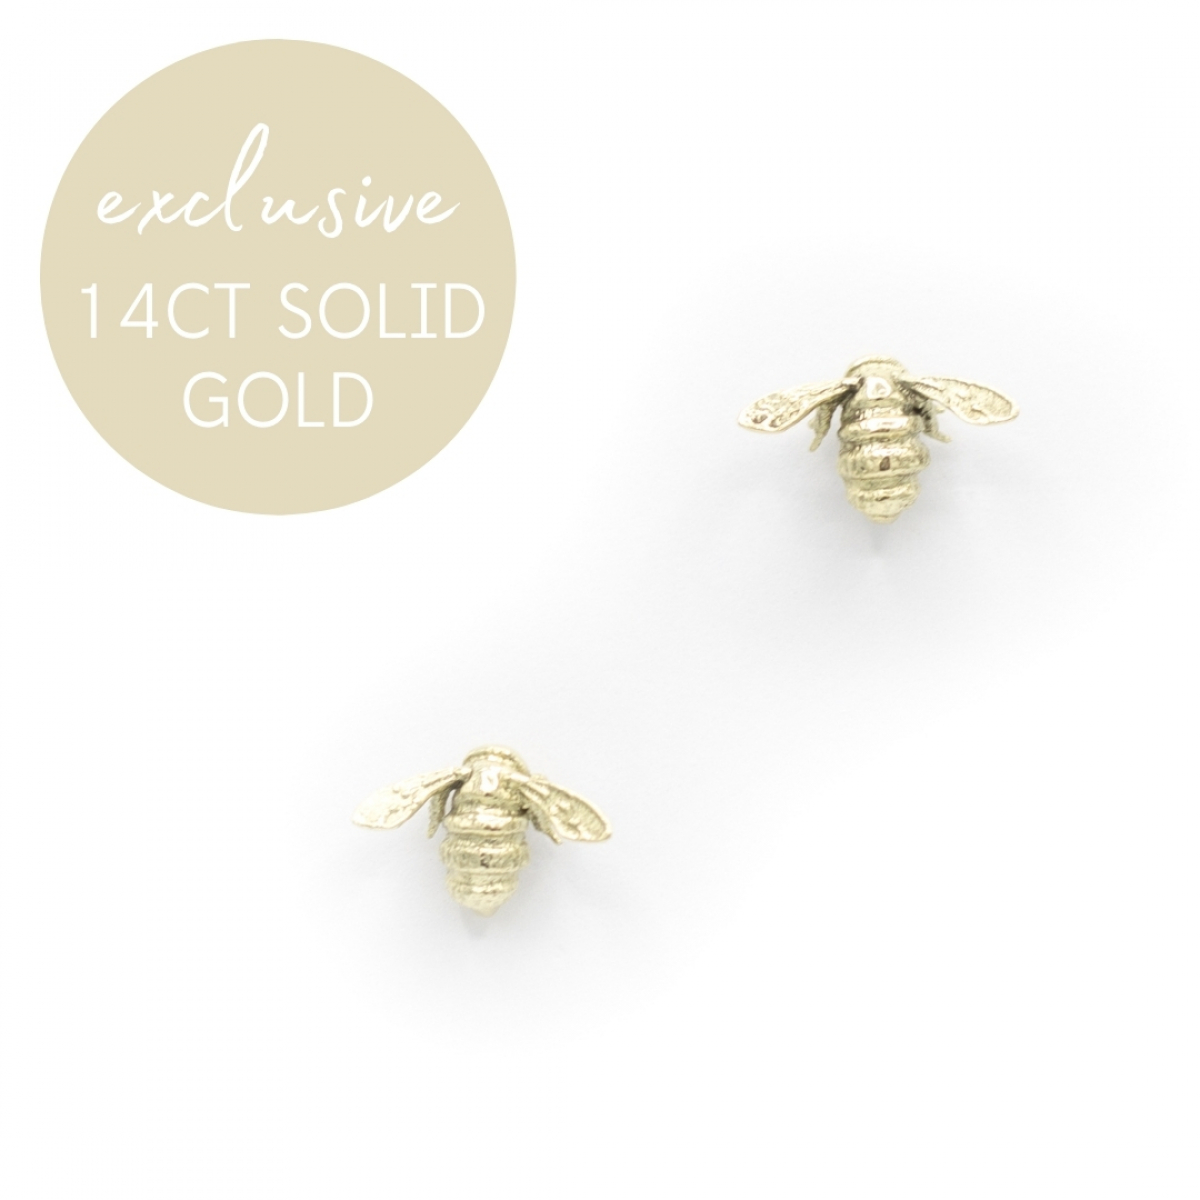 Solid 14ct Gold Bee Studs